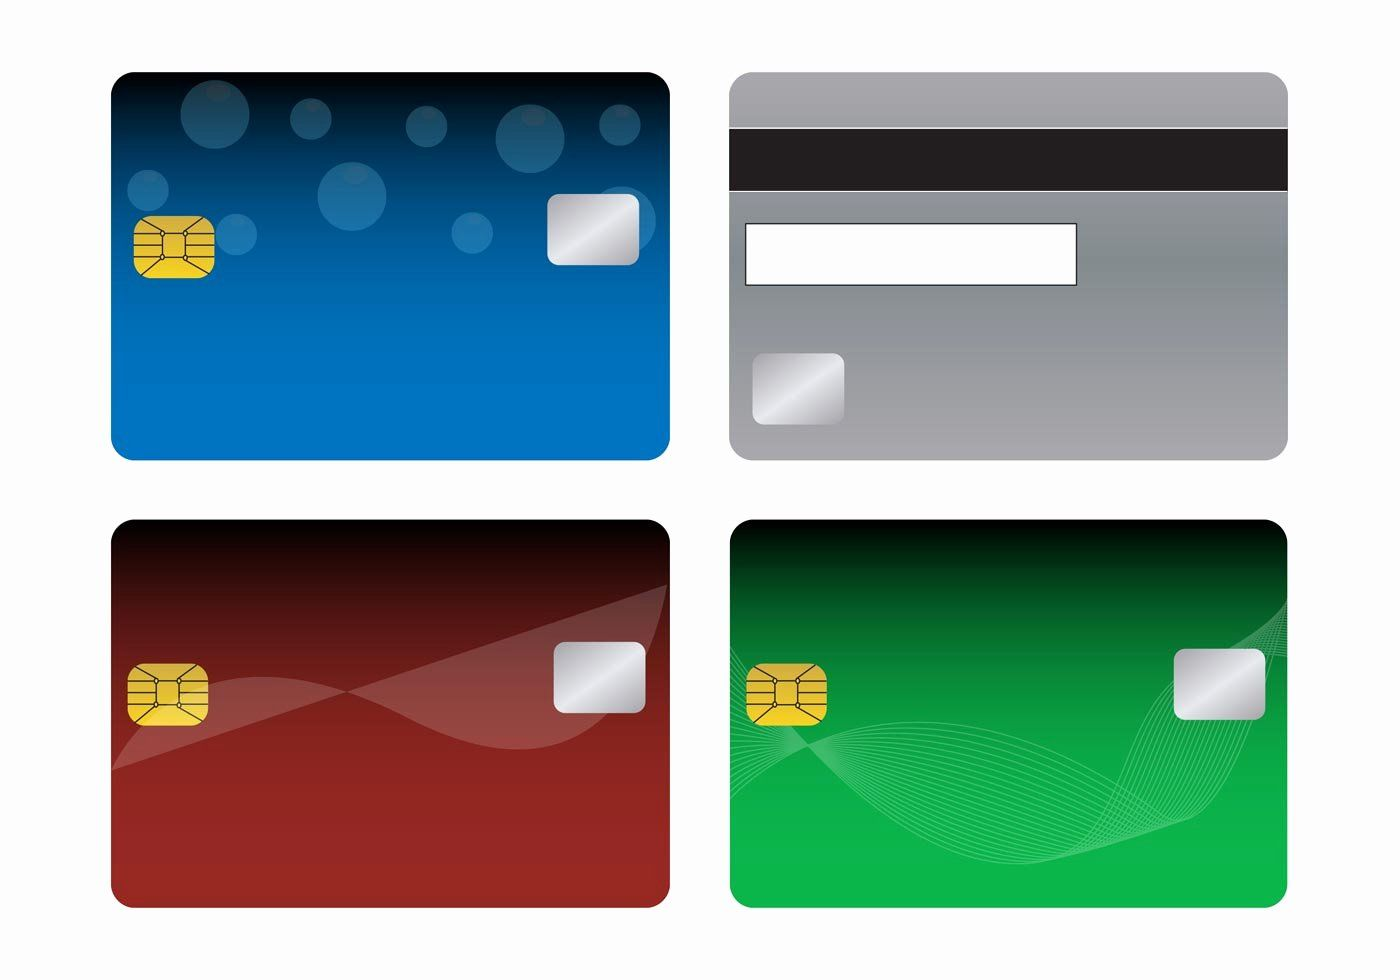 Blank Credit Card Template Elegant Bank Cards Templates Download Free Vector Art Sto Photoshop Christmas Card Template Christmas Card Template Visa Credit Card